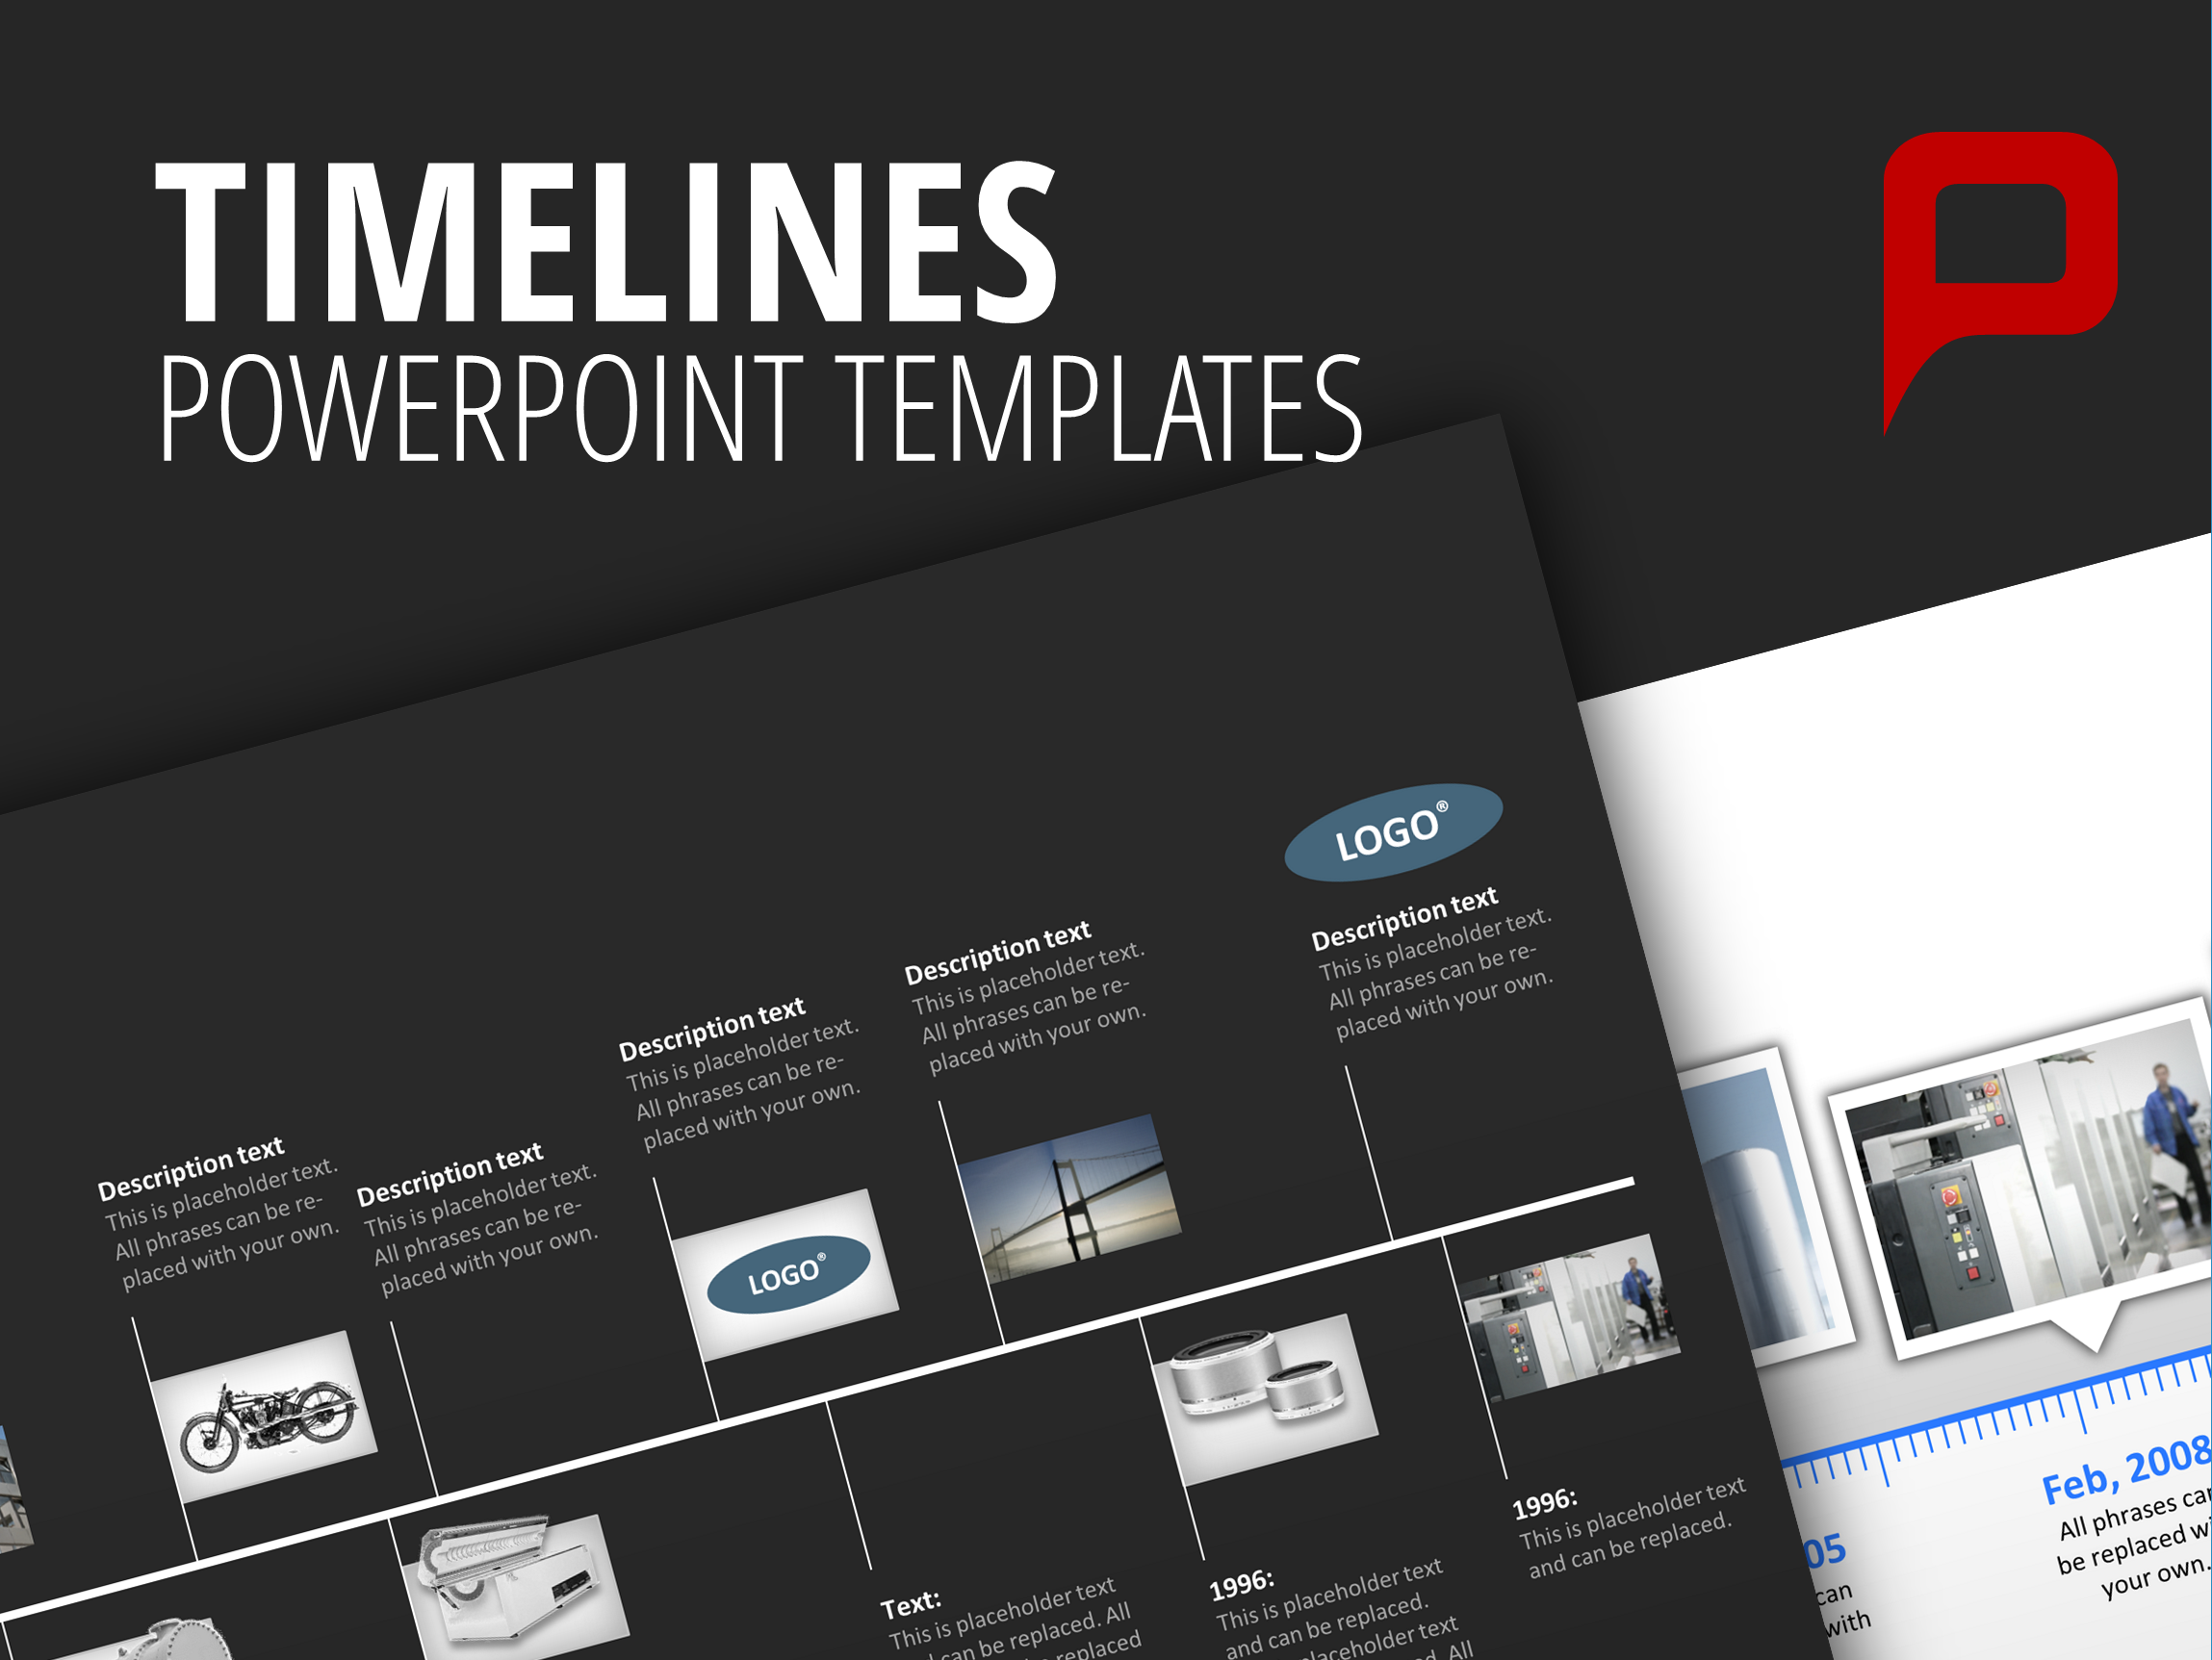 Powerpoint zeitstrahl als vorlage httppresentationload timelines are a popular design tool in powerpoint lets show you how to add more pep to your presentation and the versatile applications of timelines nvjuhfo Gallery